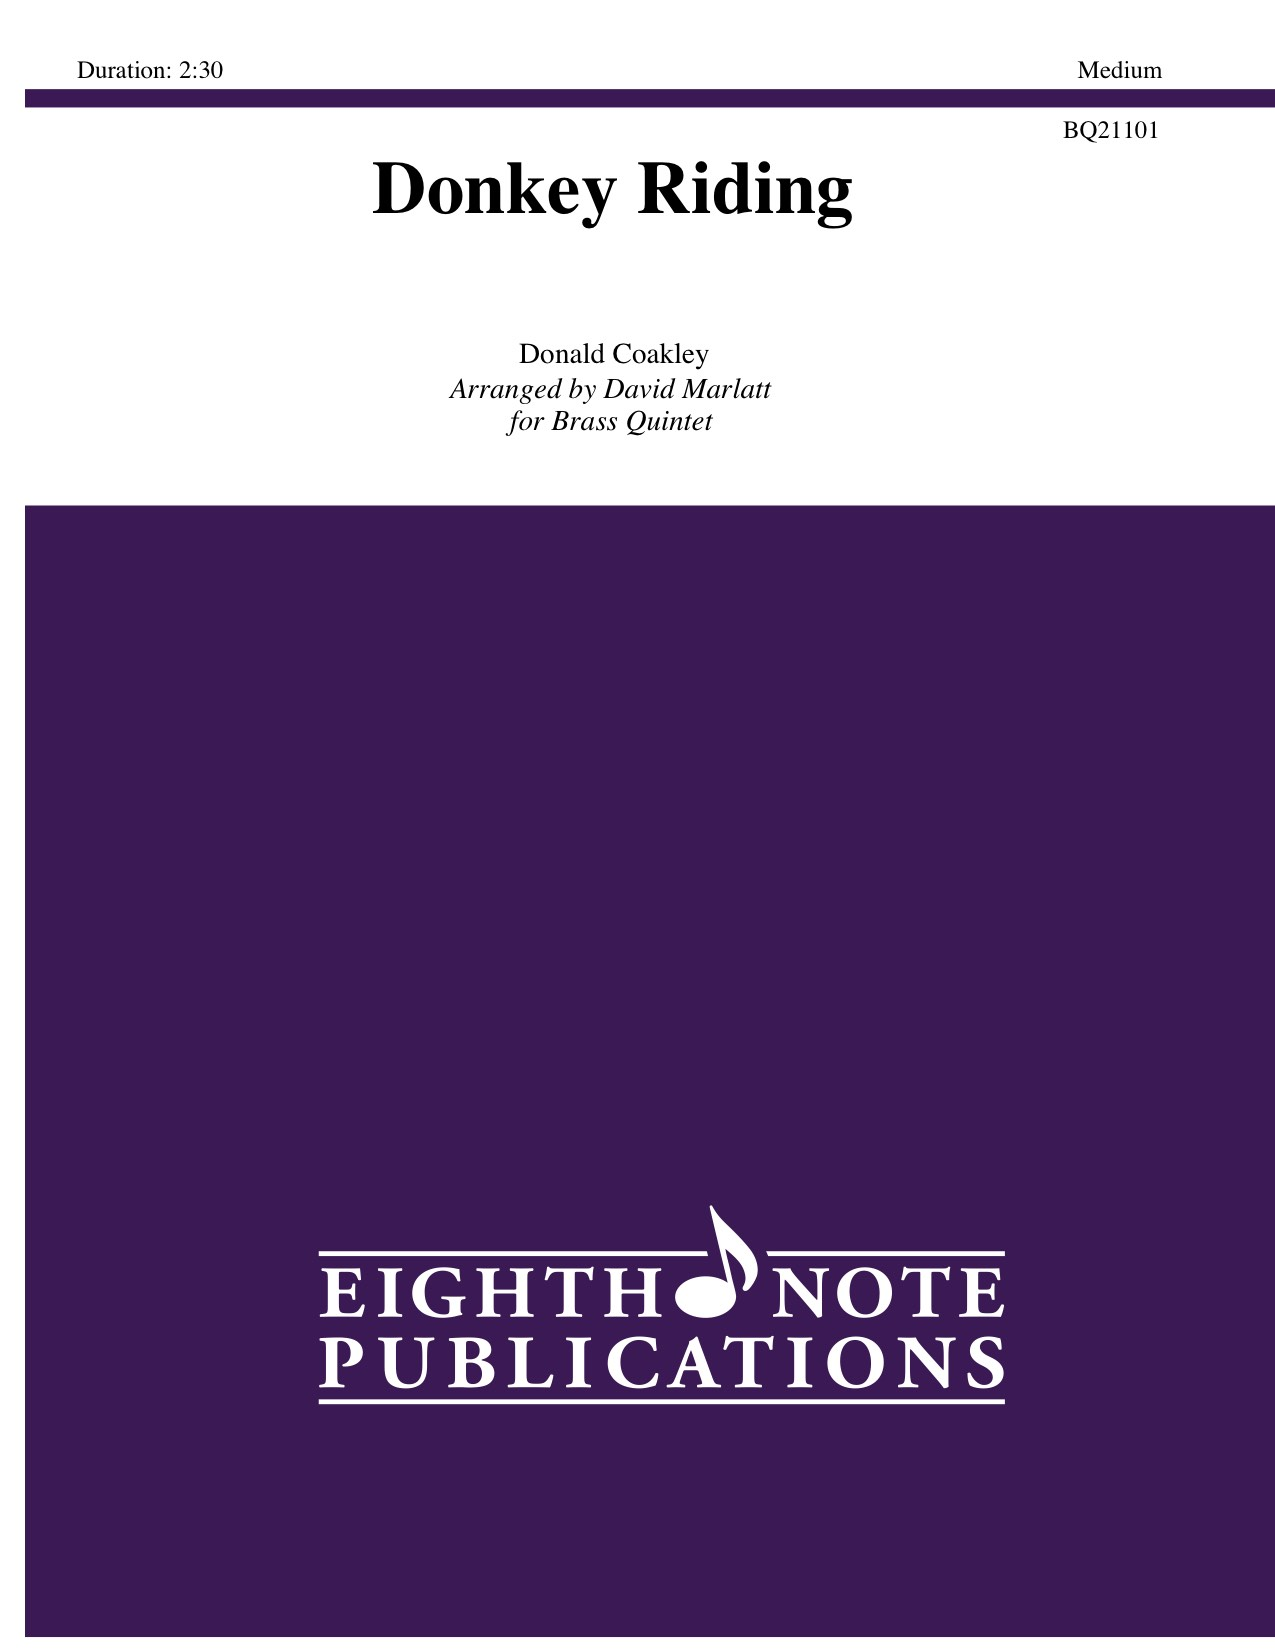 Donkey Riding - Donald Coakley